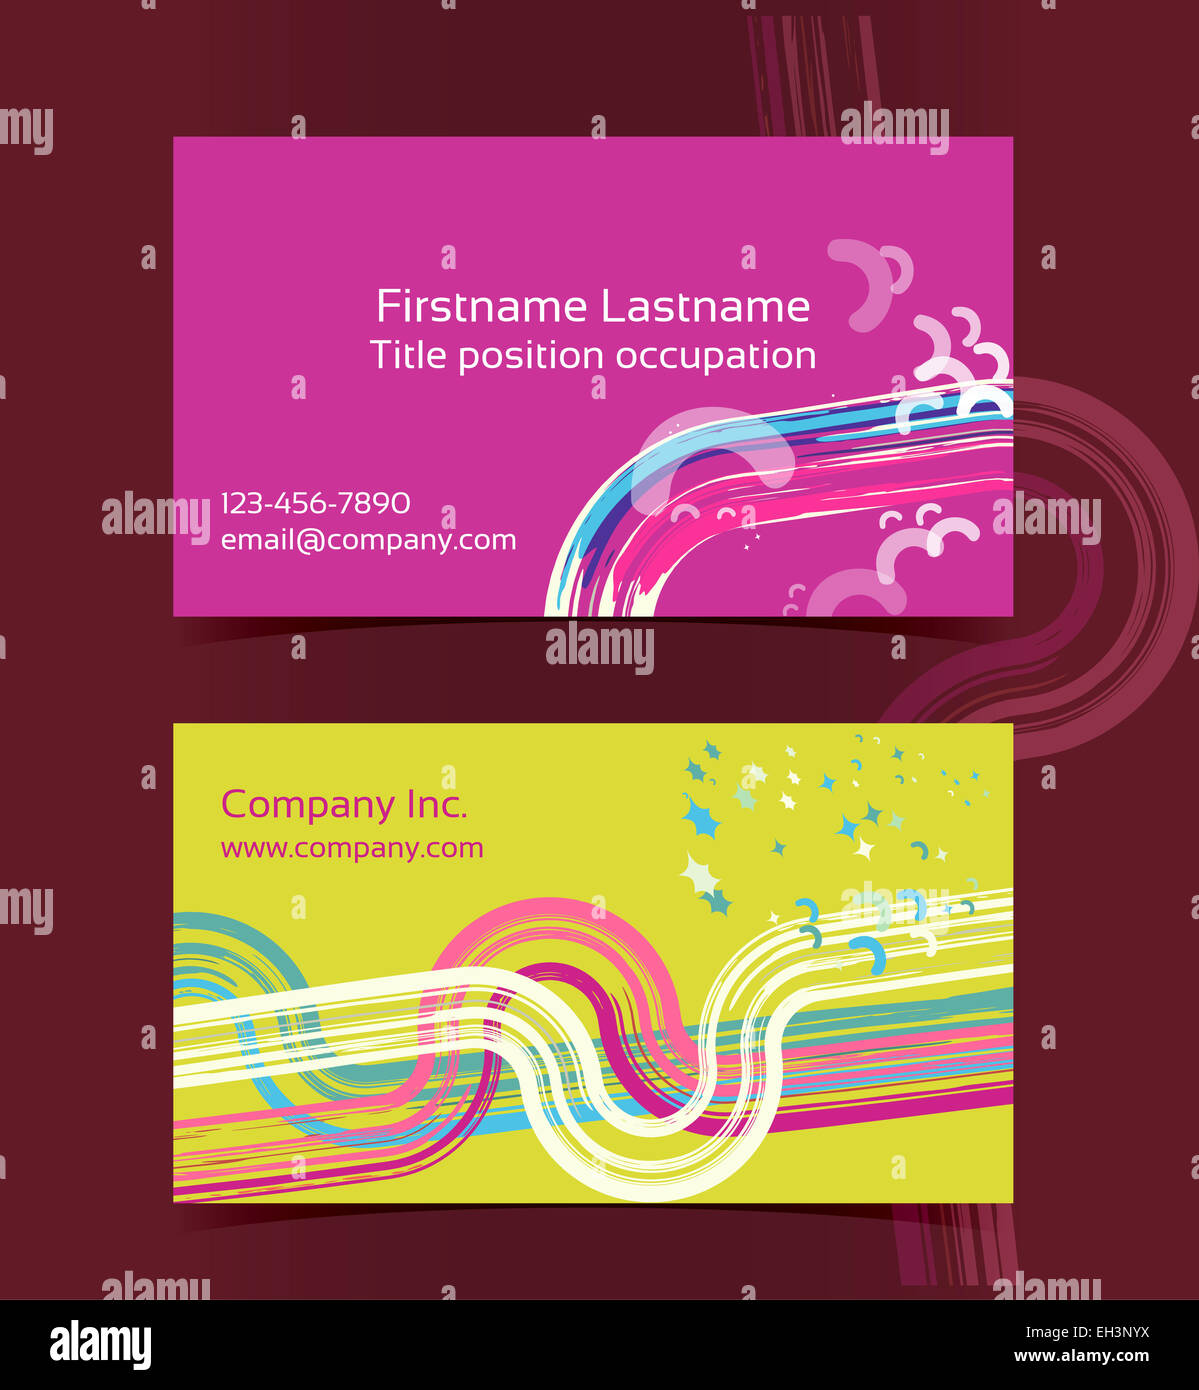 Business card layout editable design template eps10 vector stock business card layout editable design template eps10 vector transparencies used reheart Images